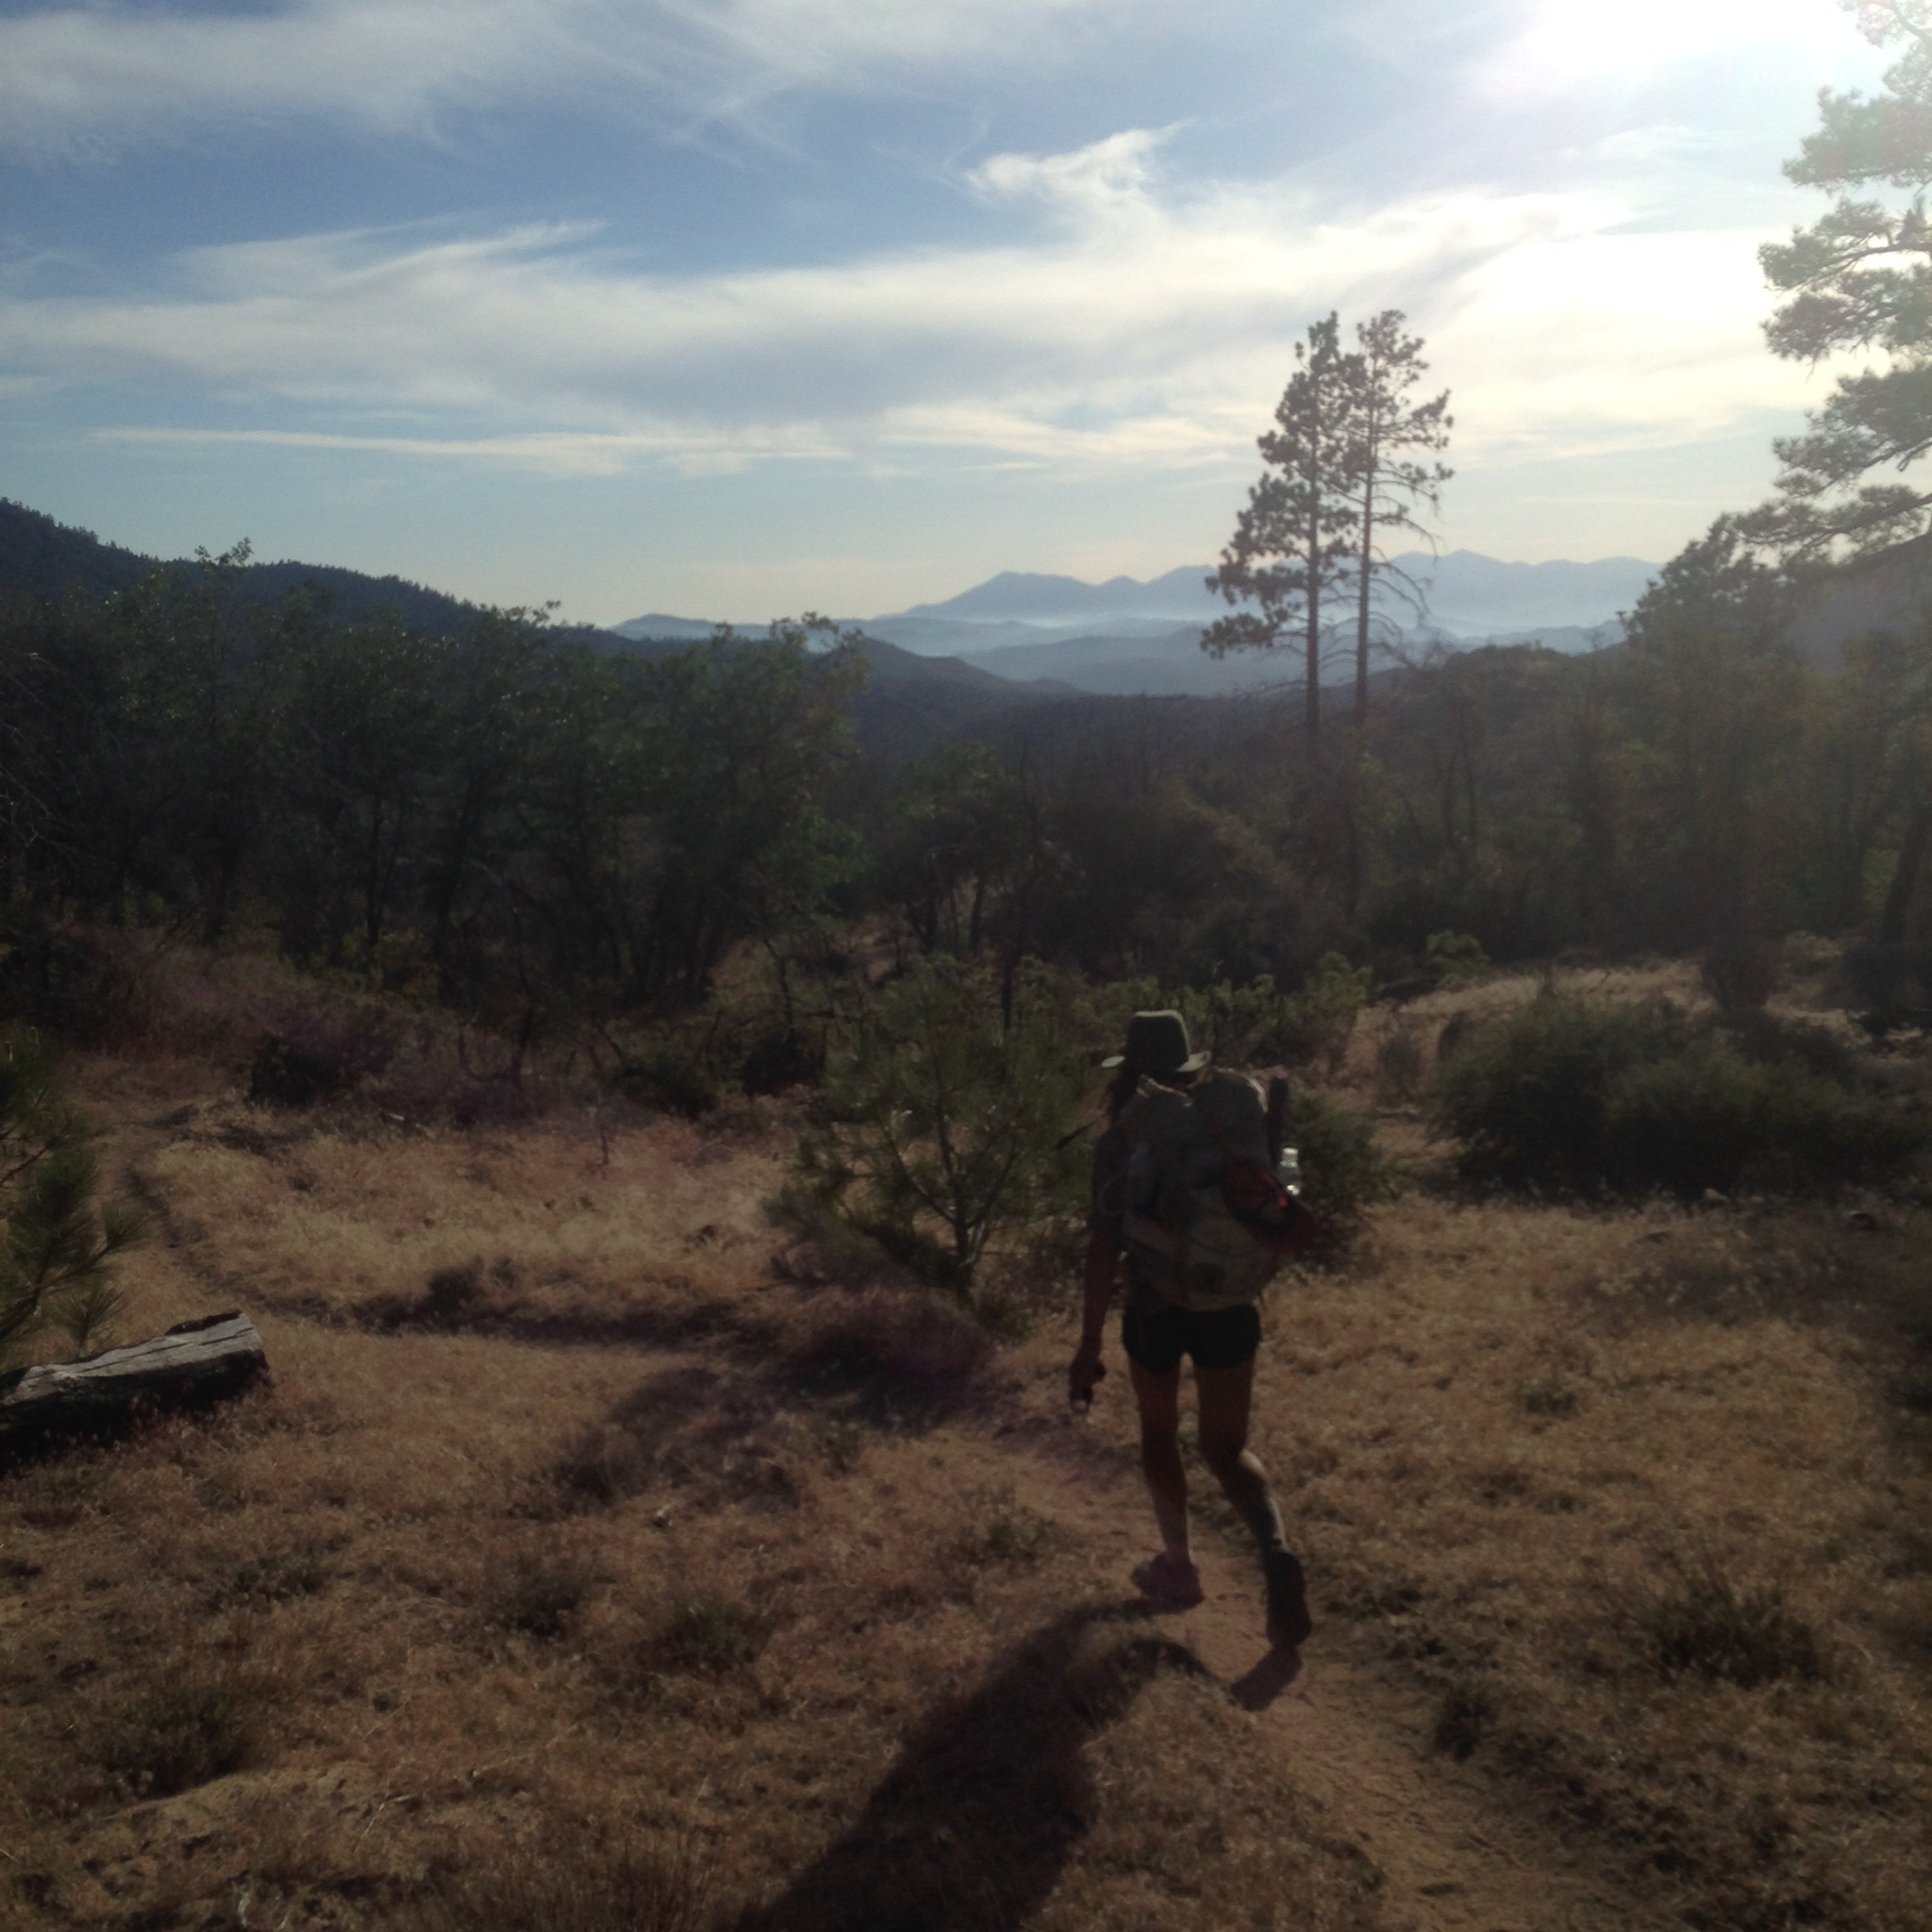 Me hiking out of Big Bear